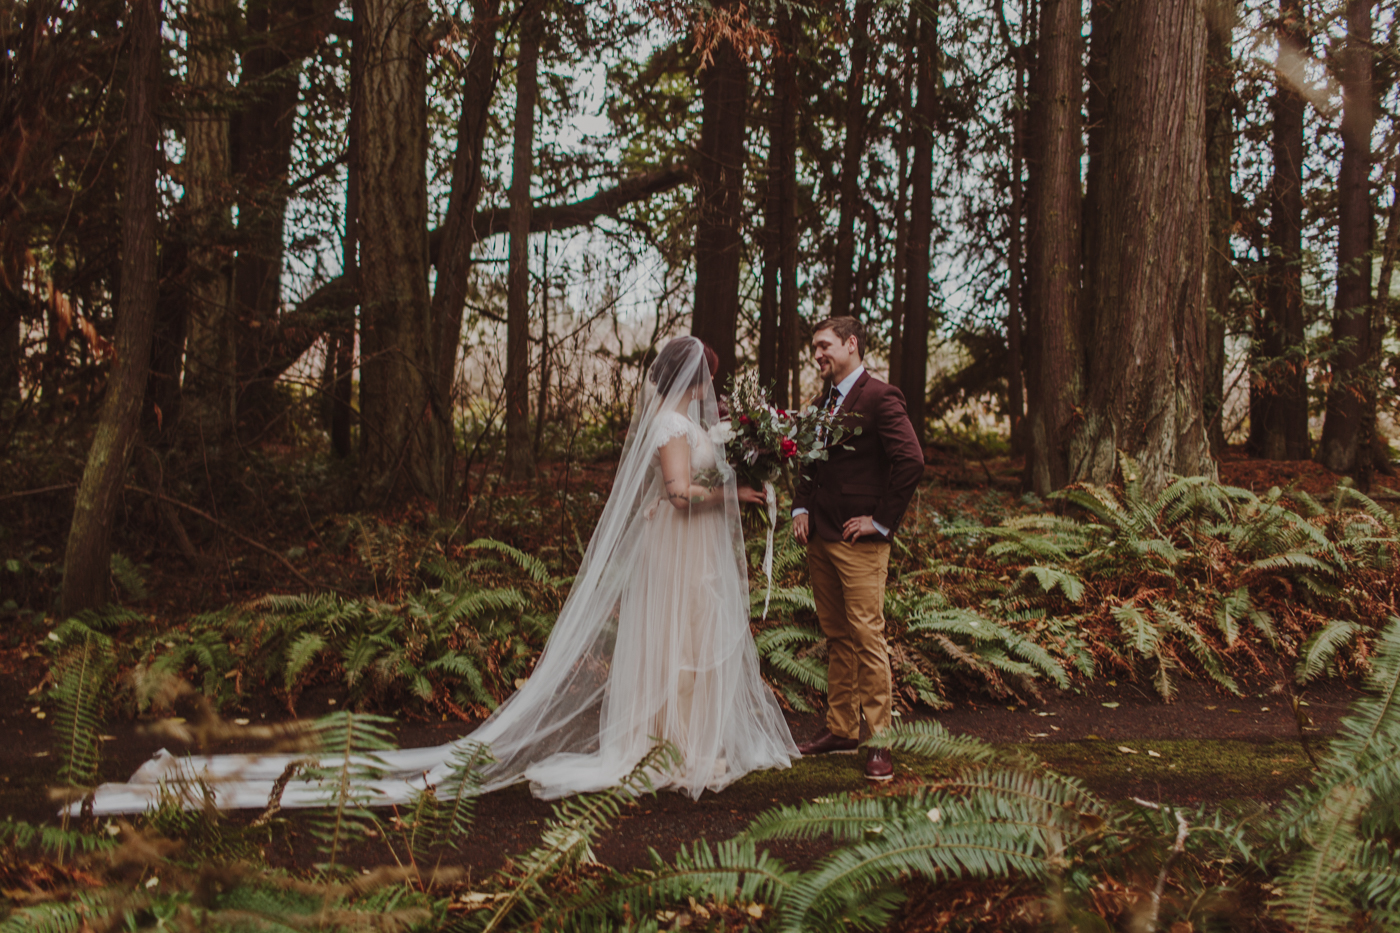 Olympic Peninsula Elopement-LizMorrow-33.jpg